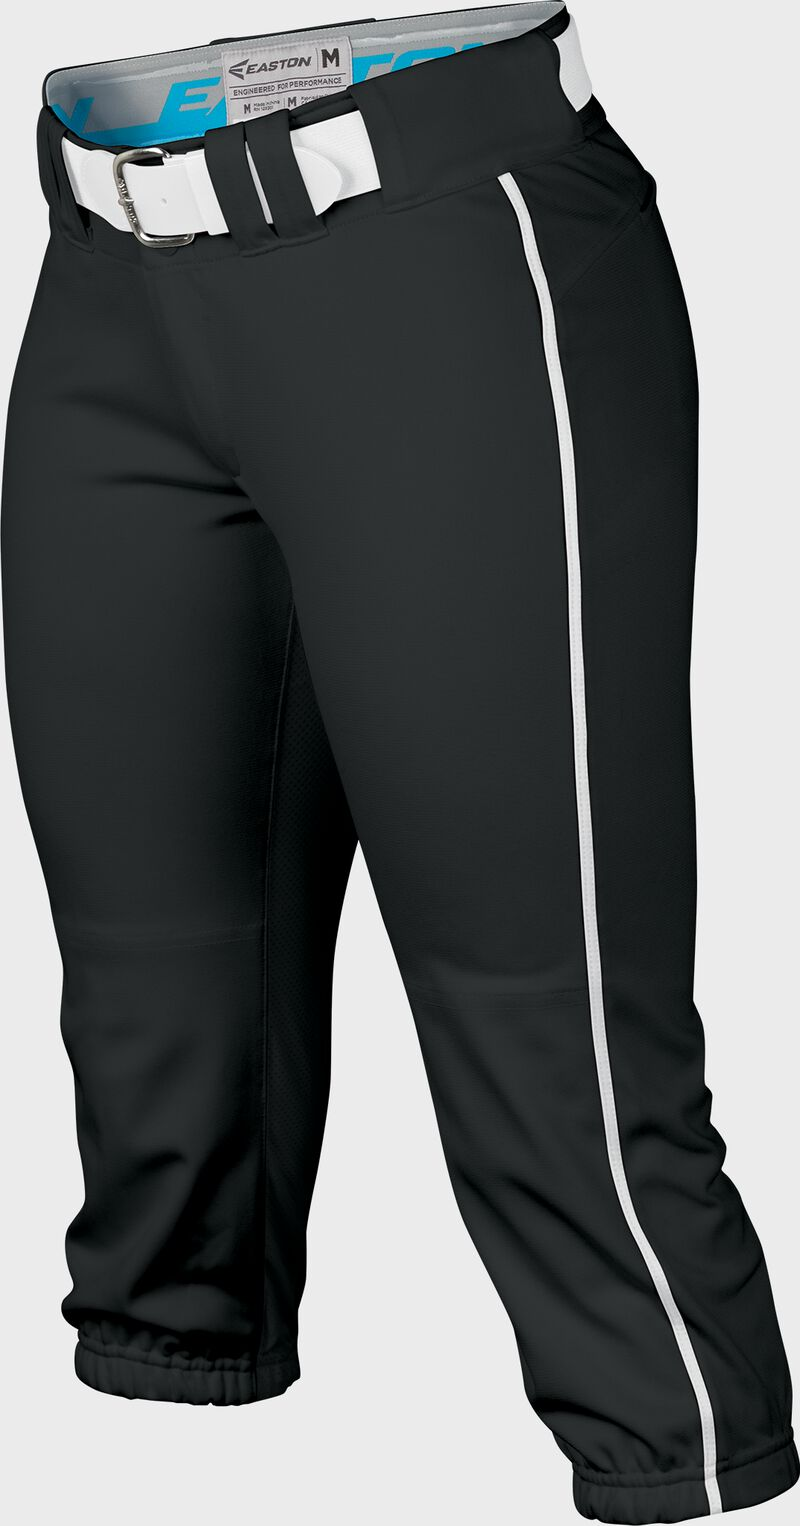 Easton Prowess Softball Pant Women's Piped BLACK/WHITE  S